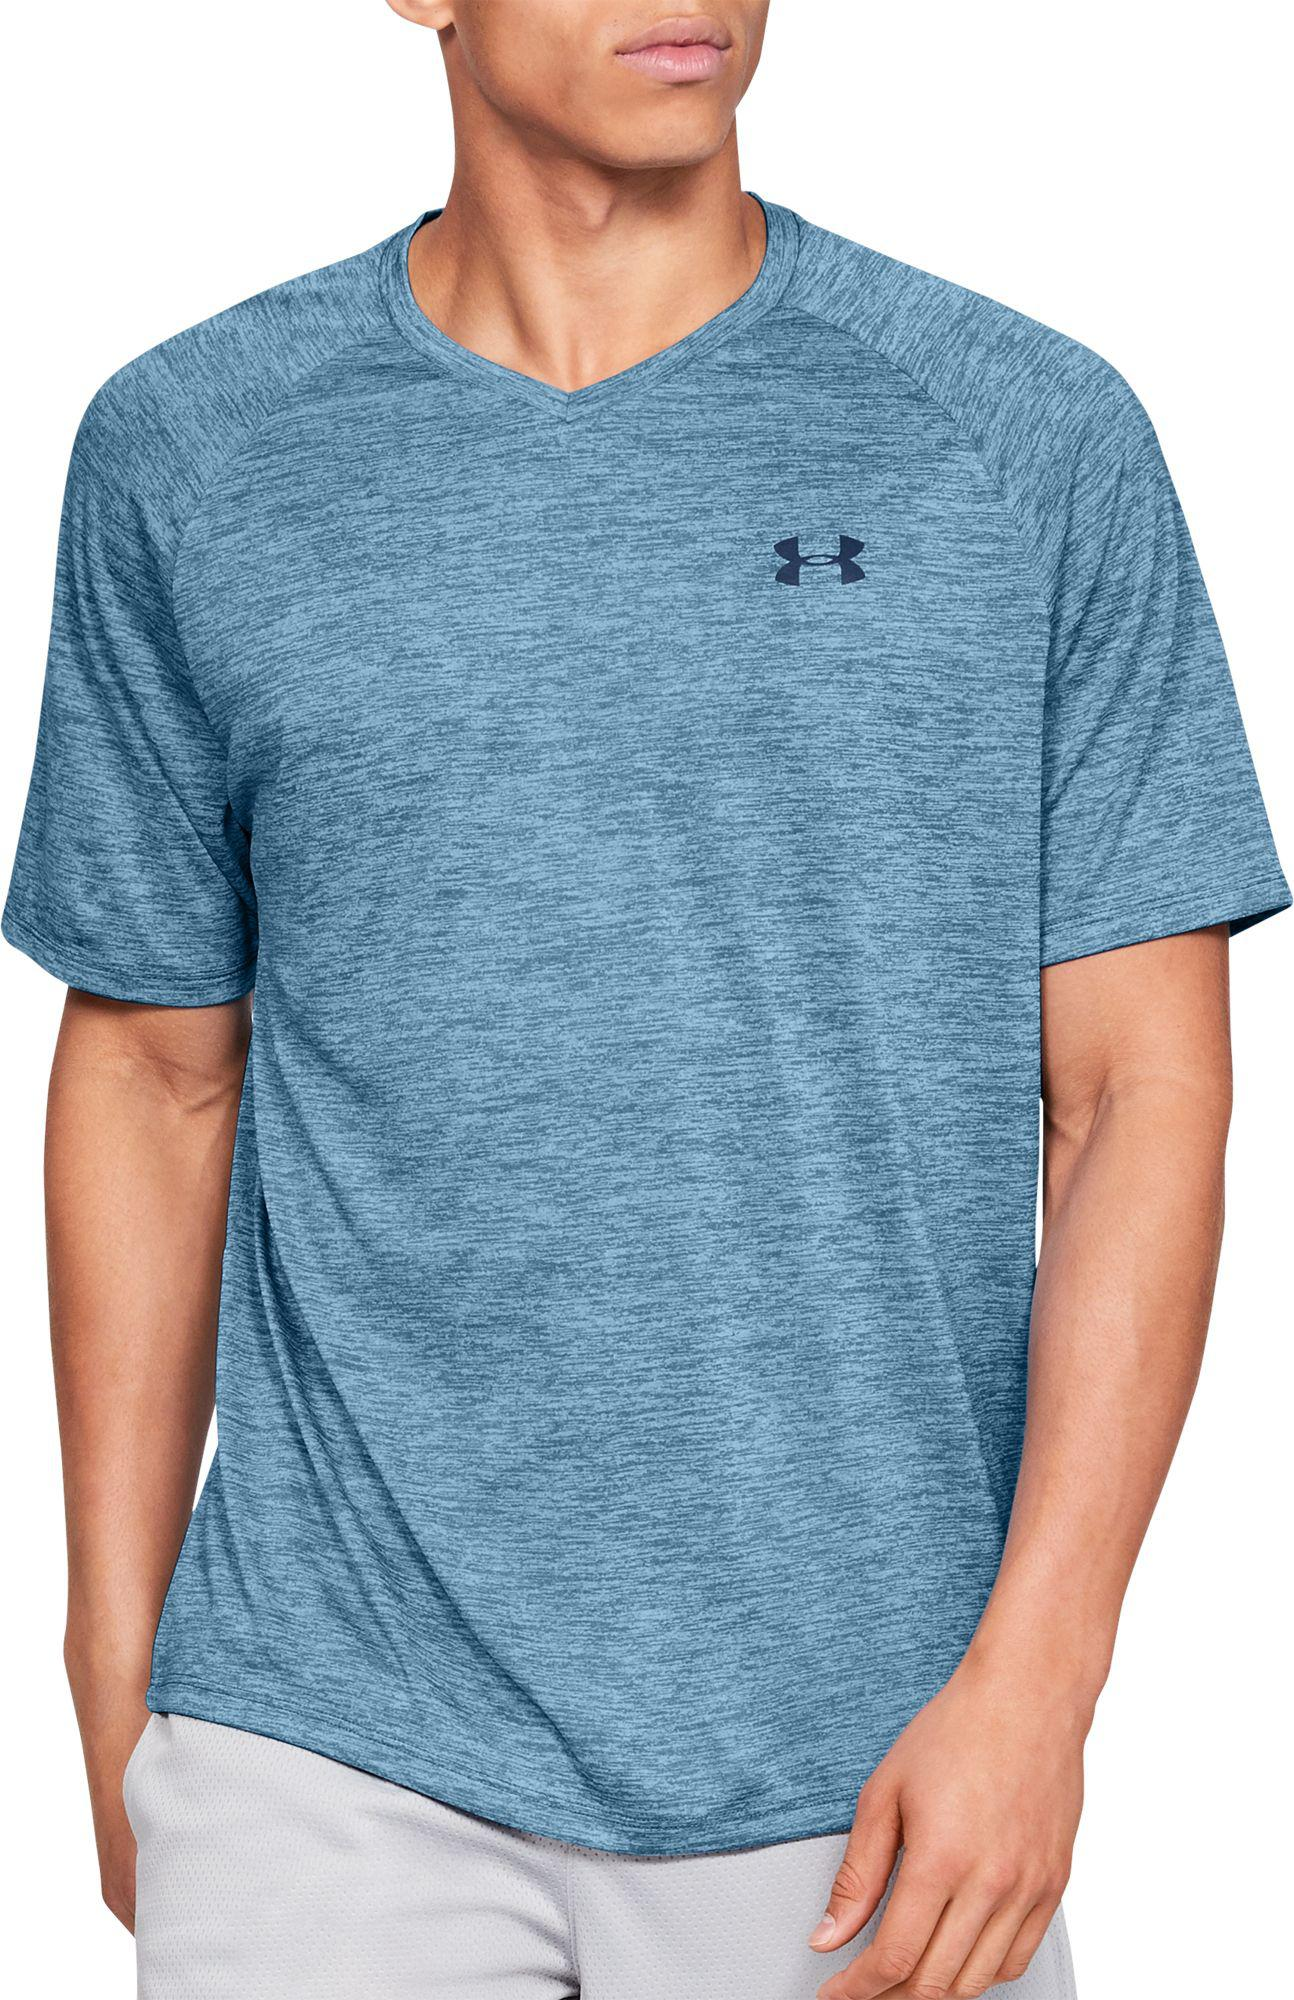 1a4cf0b5 Lyst - Under Armour Tech V-neck T-shirt in Blue for Men - Save 24%